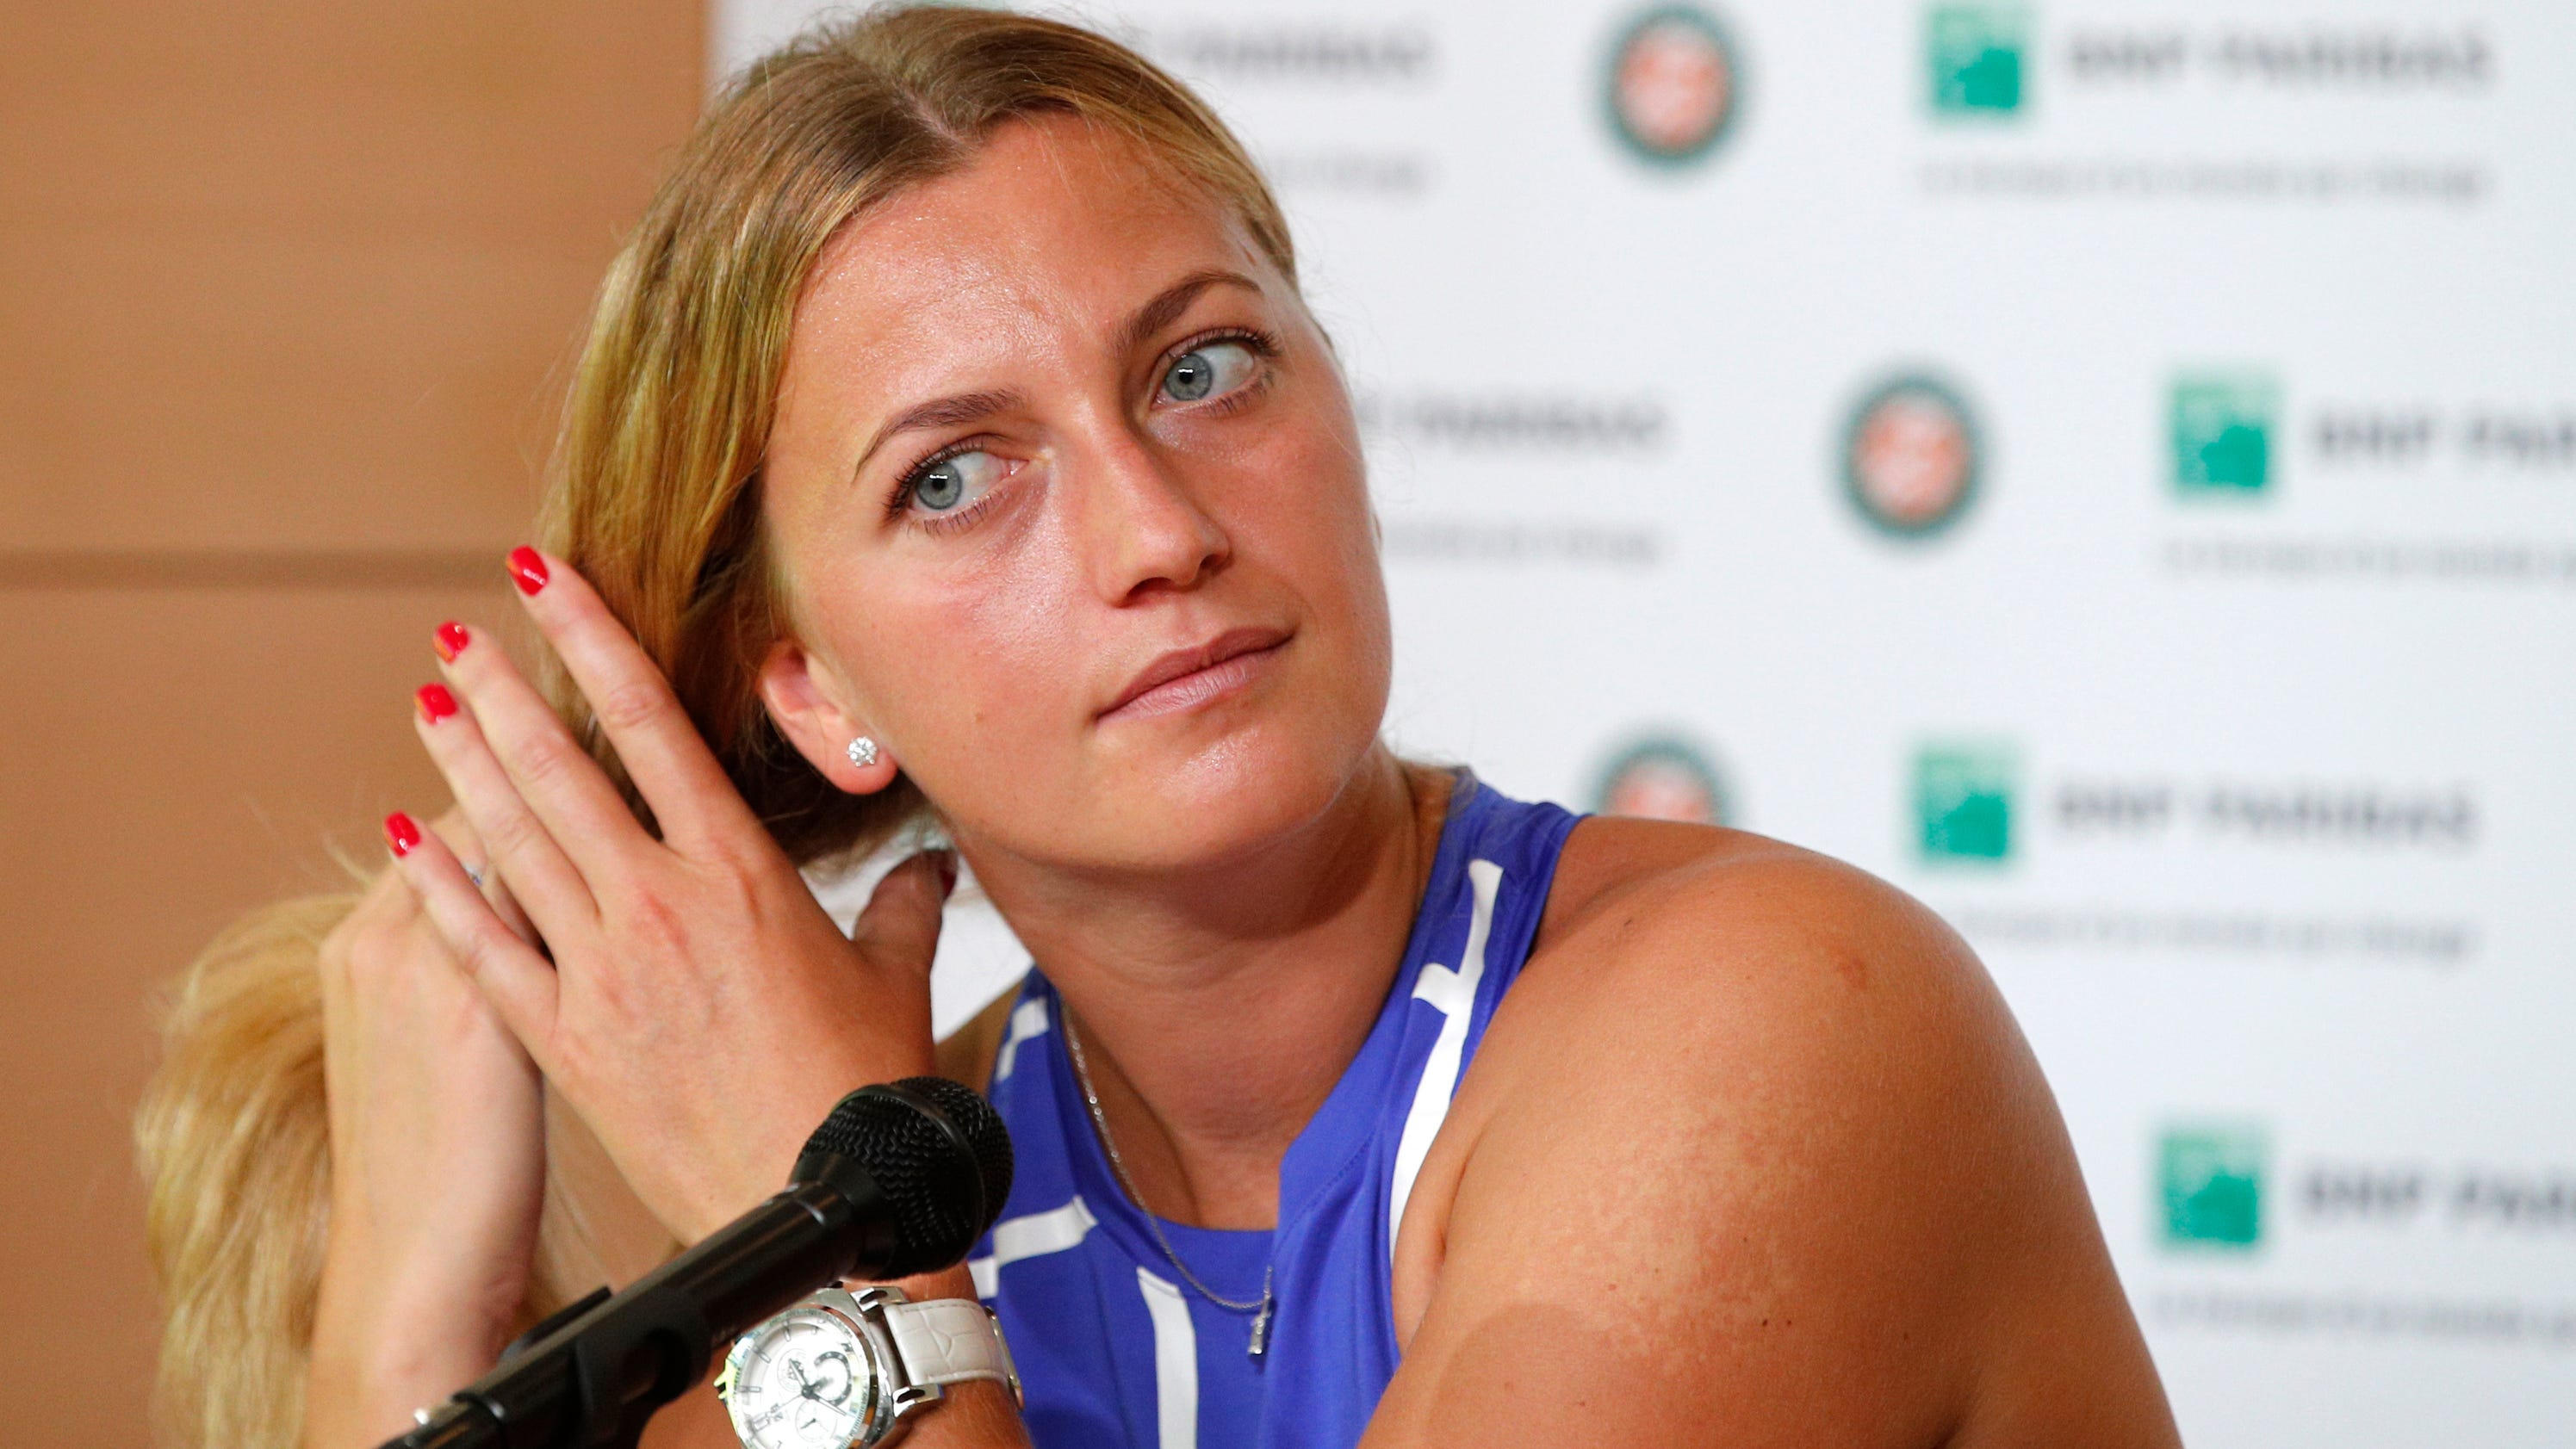 Petra Kvitova To Play At French Open Following Knife Attack